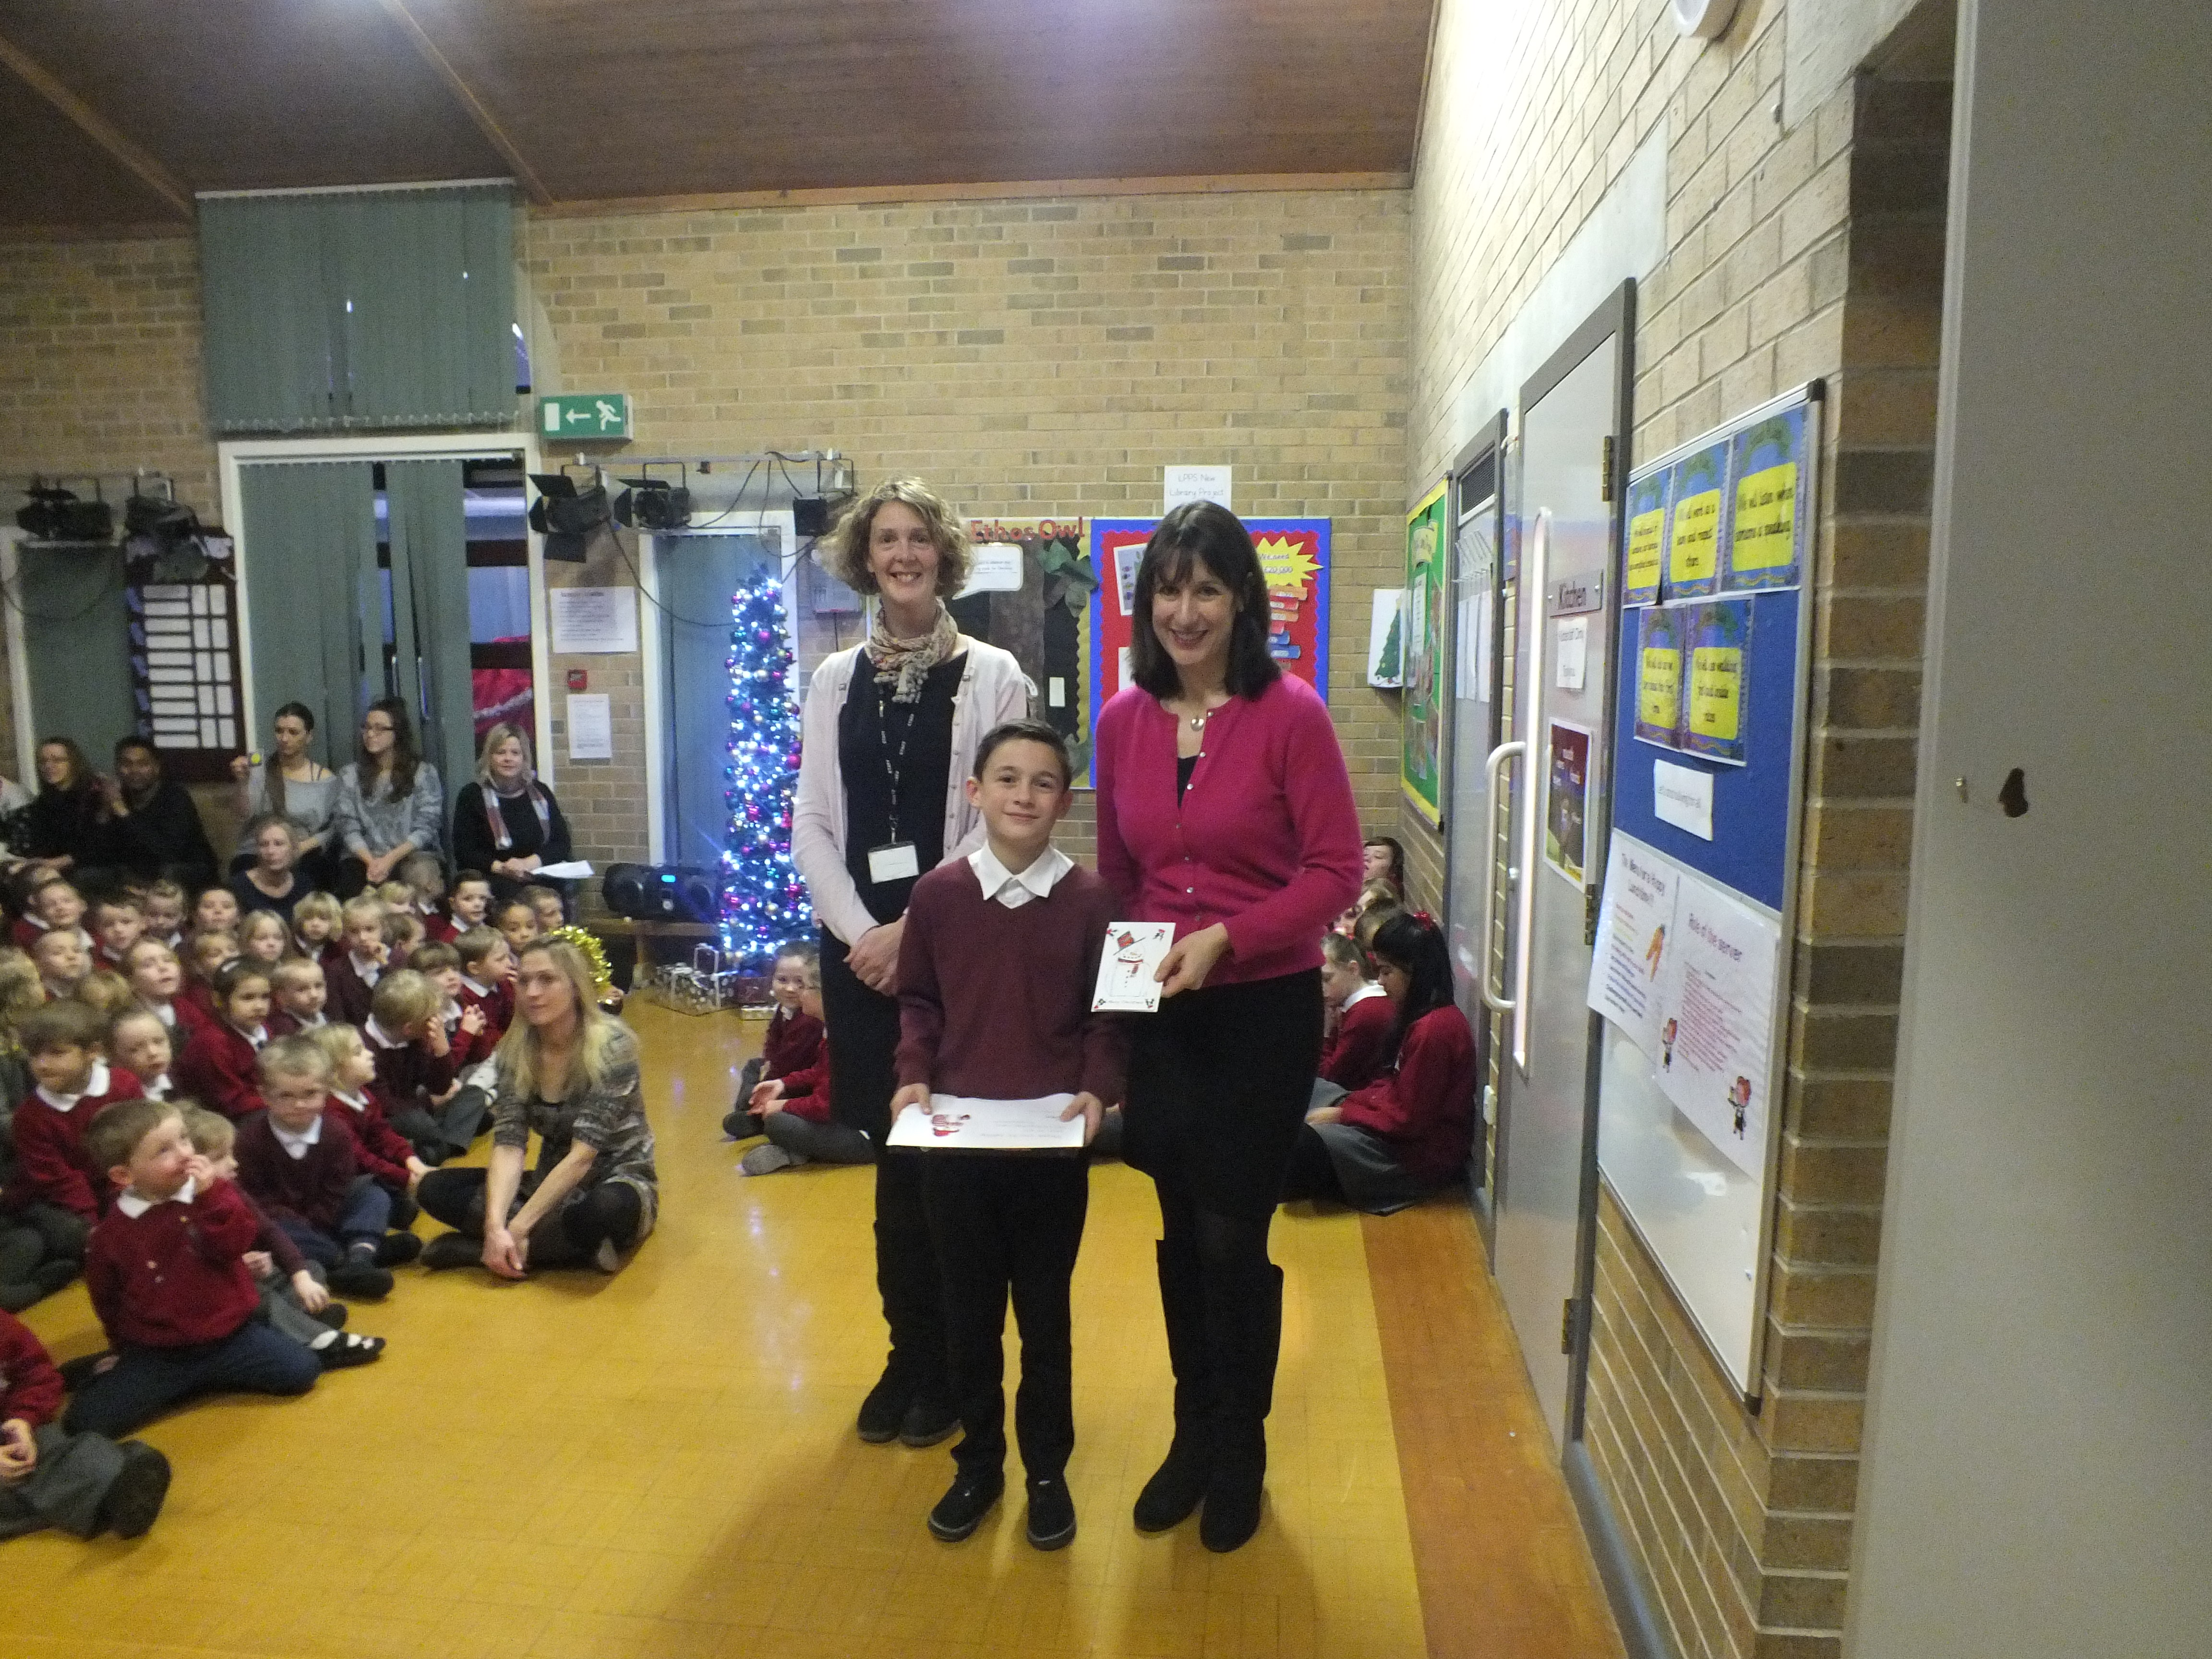 Rachel with Headteacher Ms Ford and competition winner, Archie